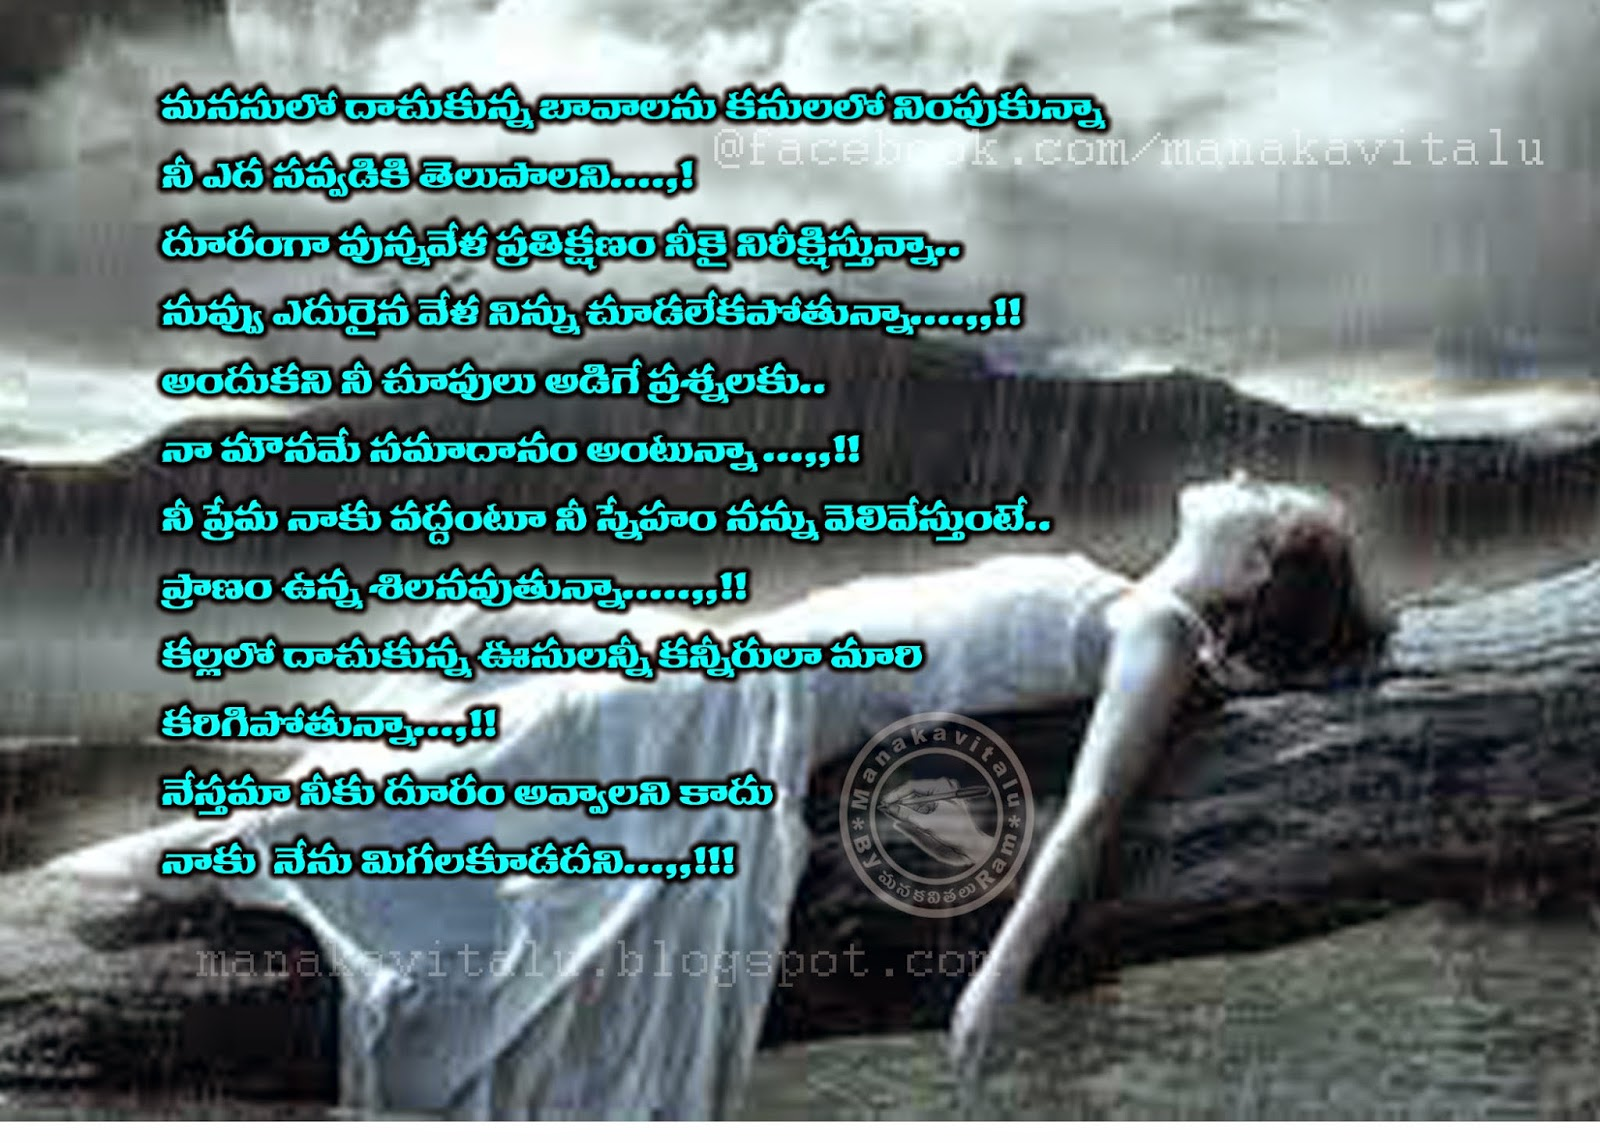 Telugu prema failure girl wallpaper with quote, message